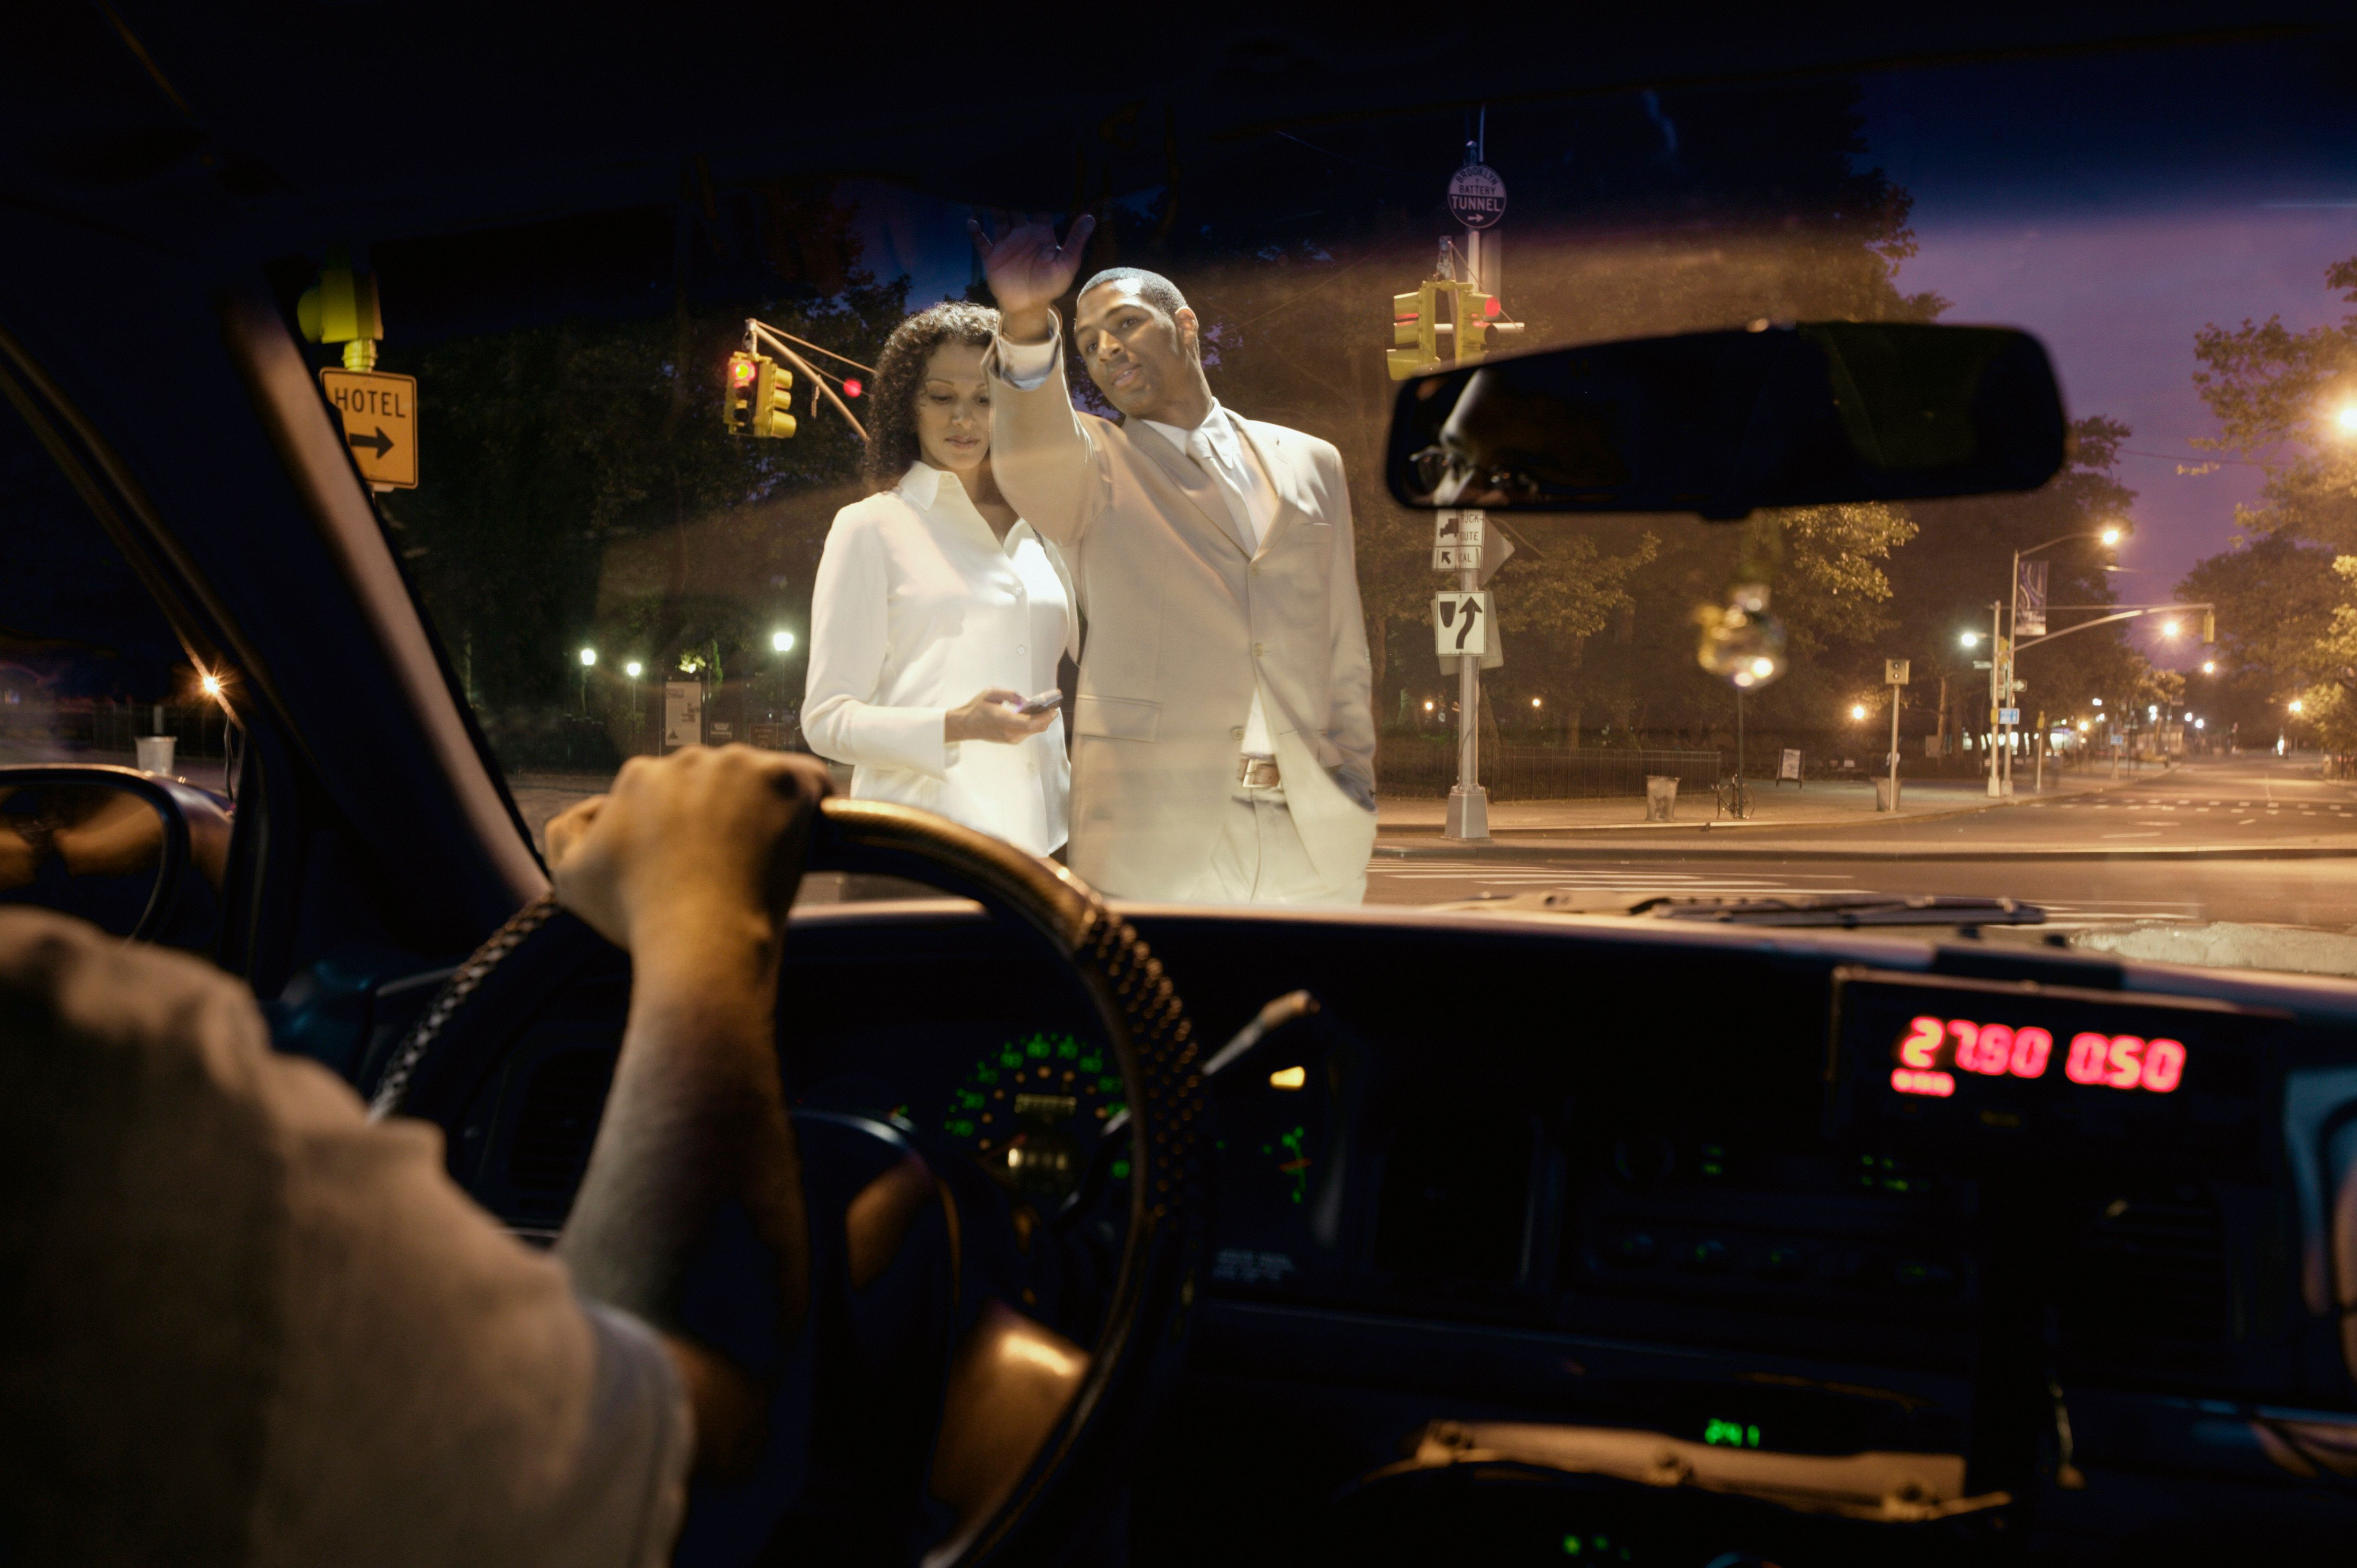 A new study by the National Bureau of Economic Research found discrimination -- long a problem in the taxi industry -- also e